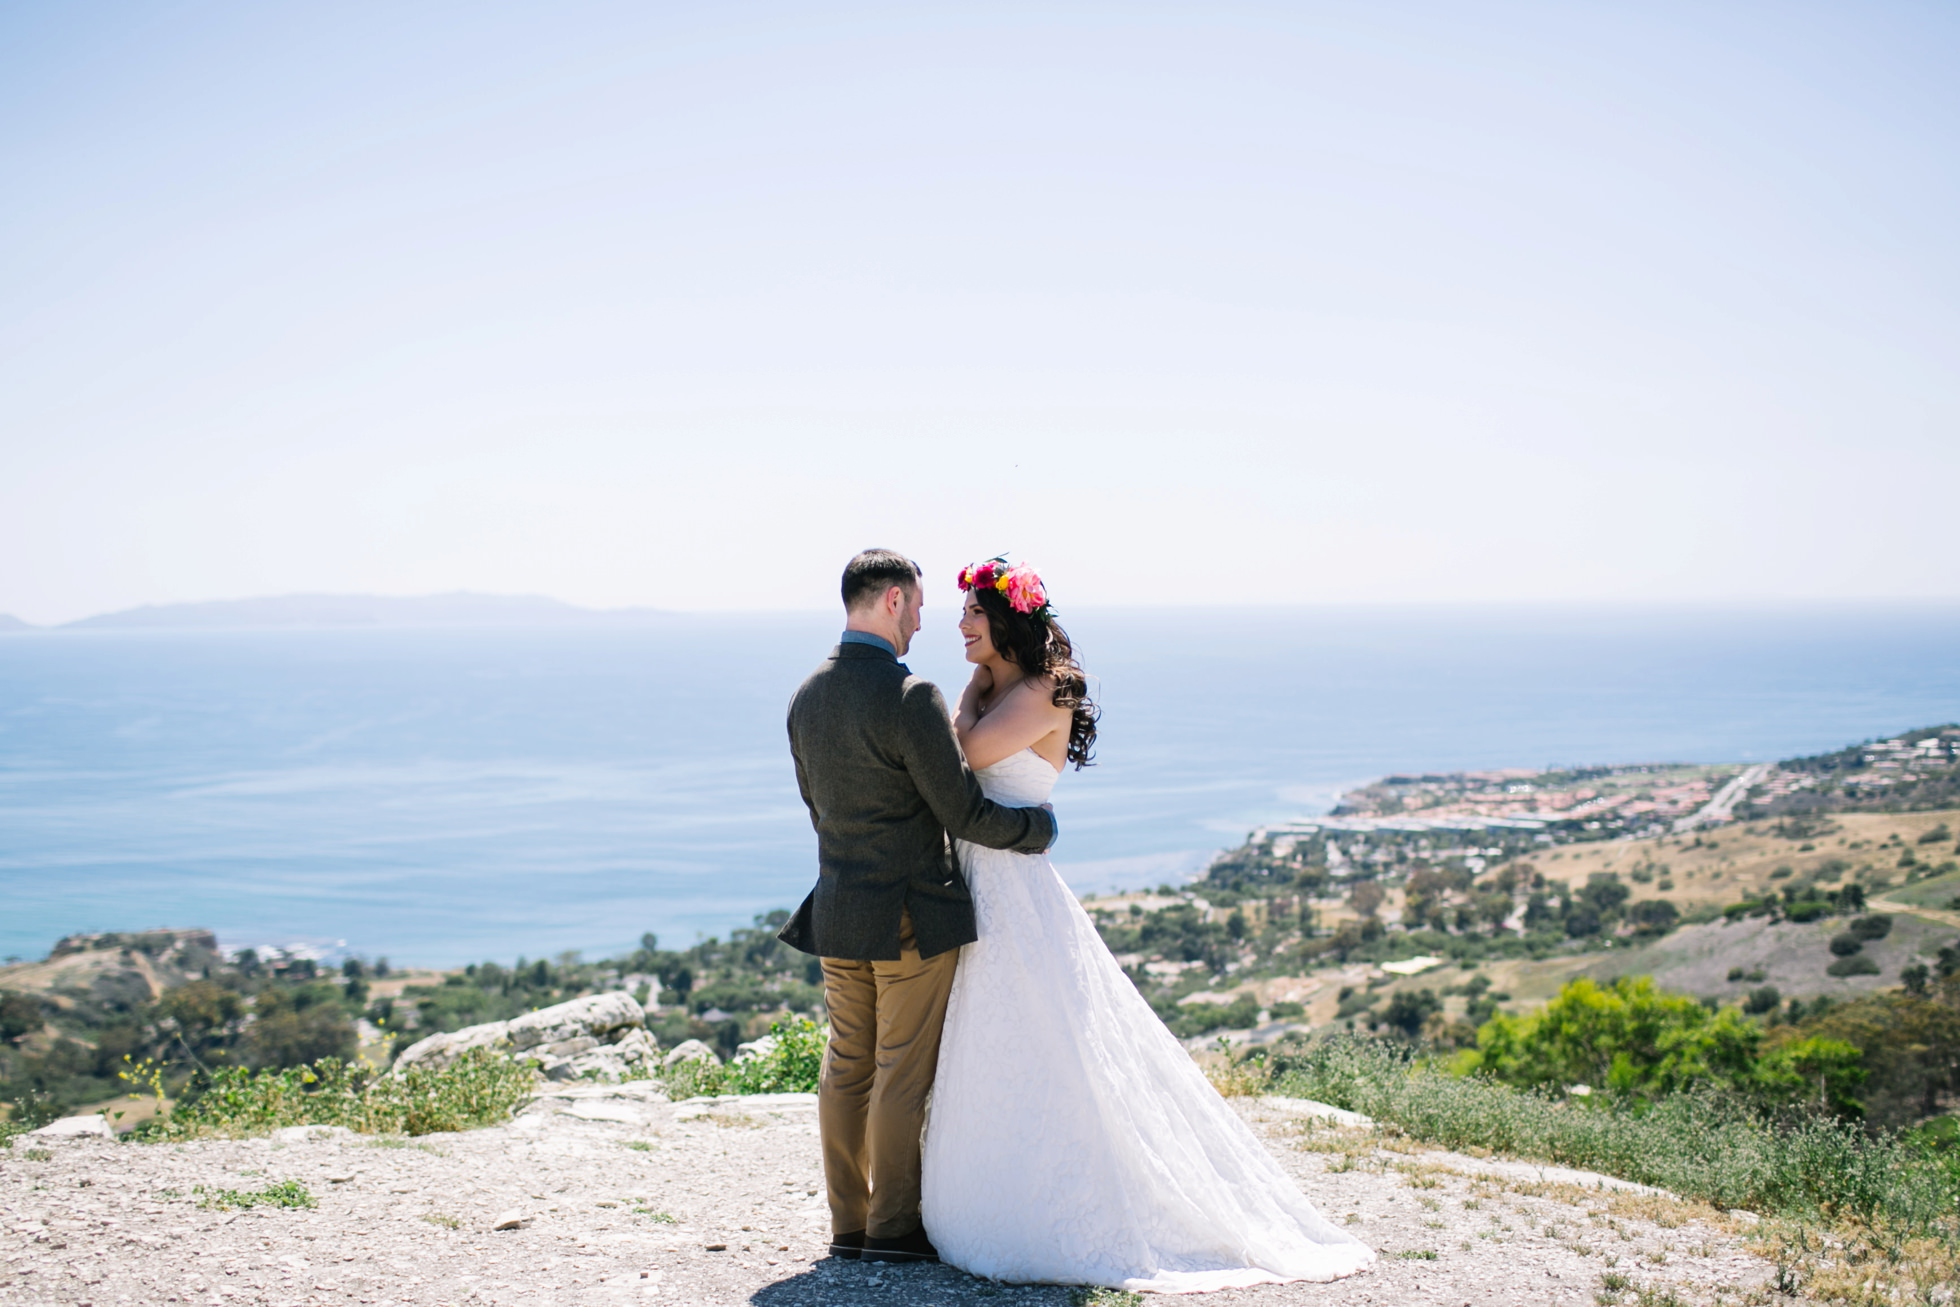 Palos Verdes Southern California Destination Wedding | brittneyraine.com 0021